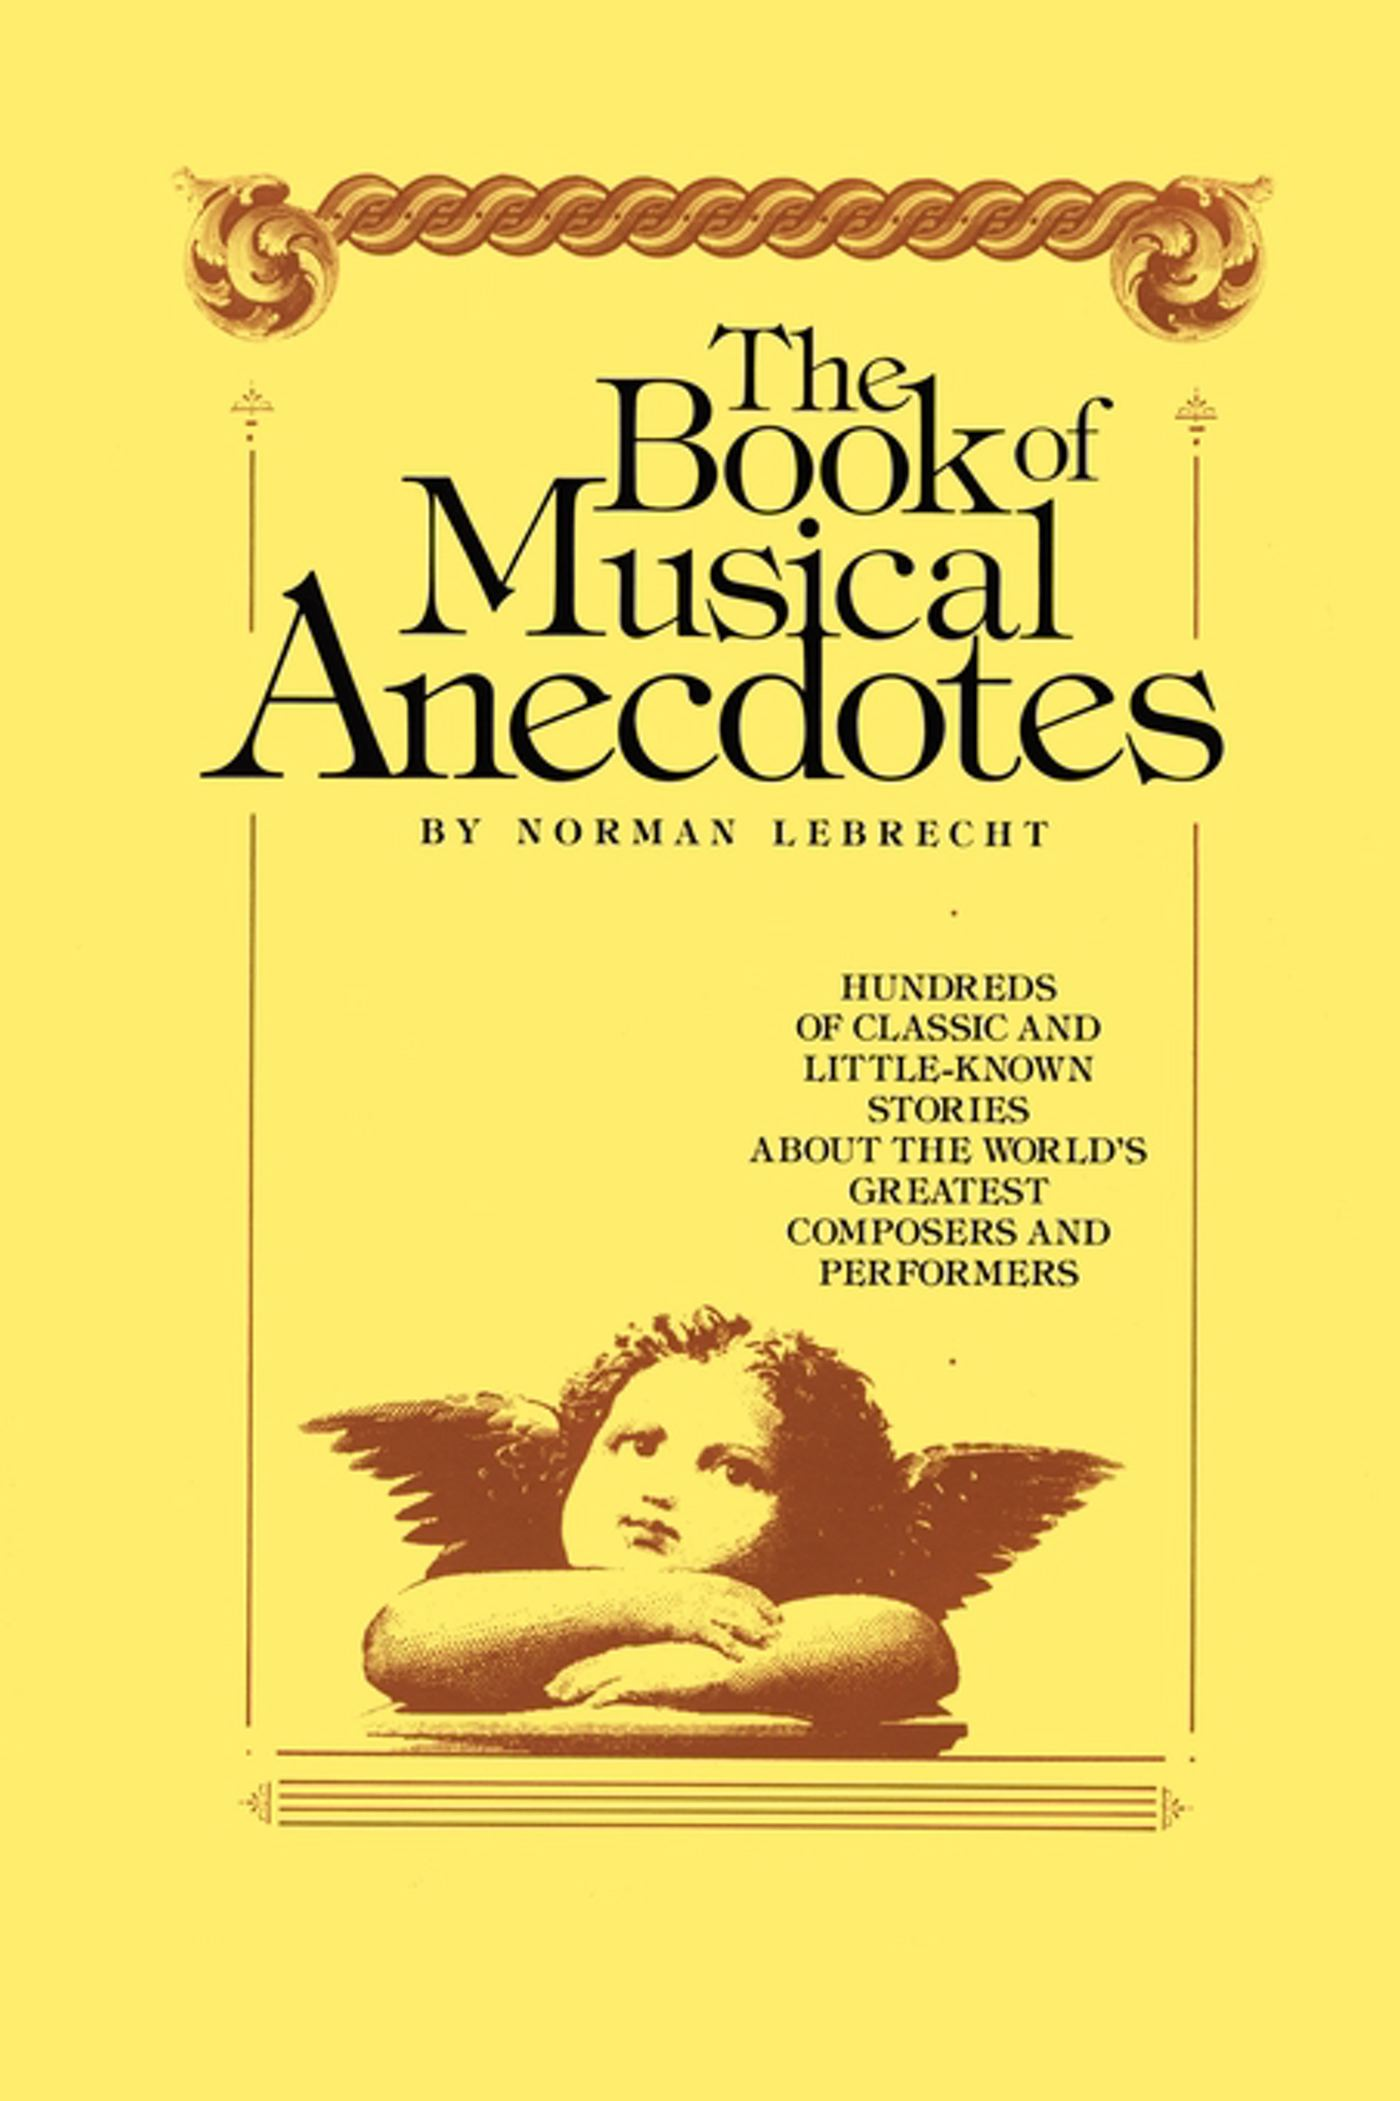 Book of Musical Anecdotes by